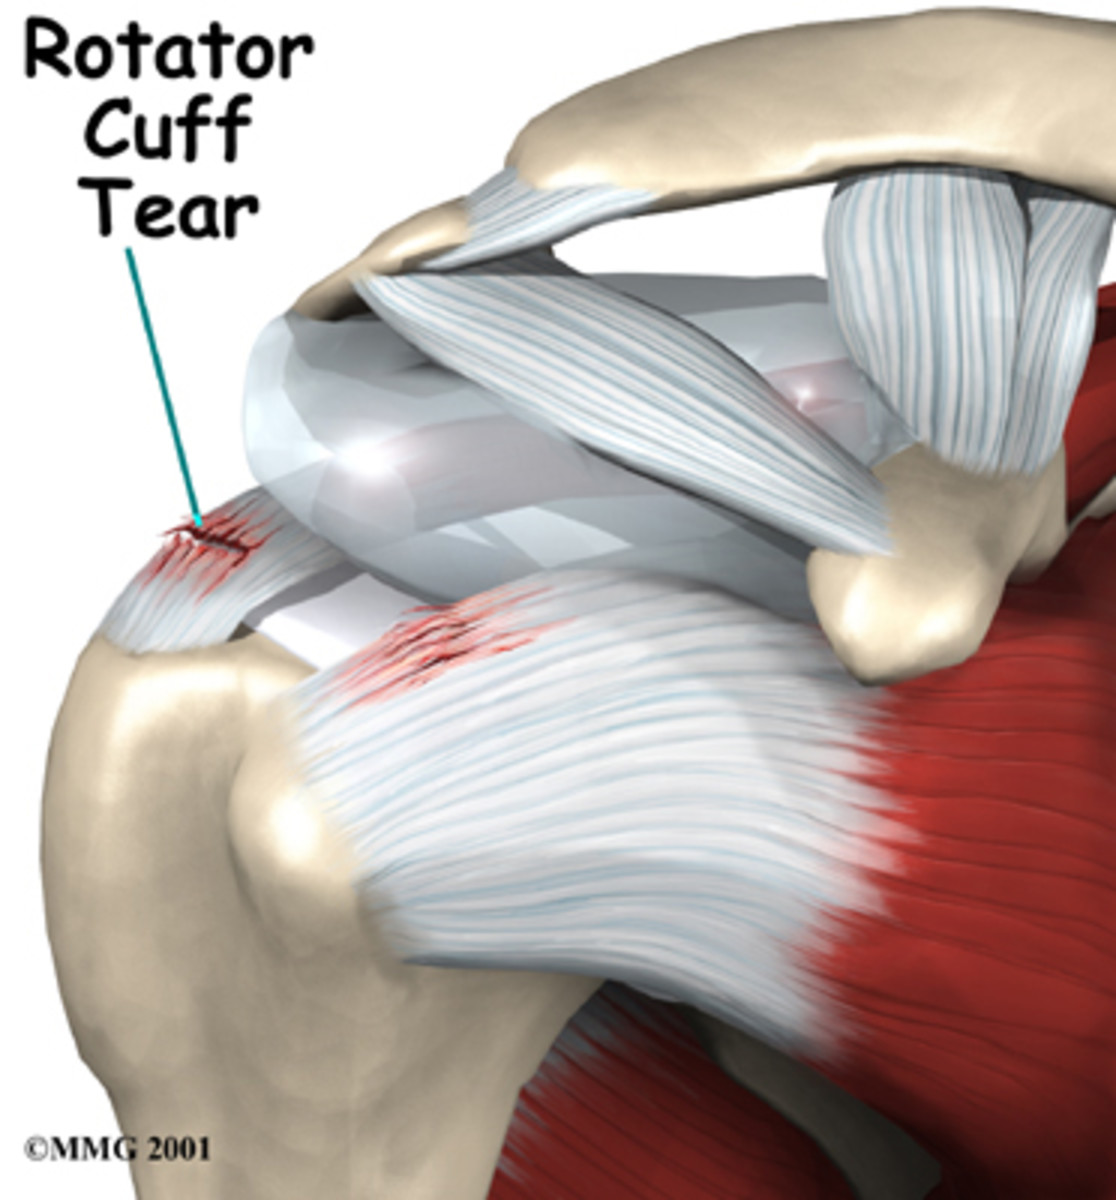 Rotator cuff tears are the most common forms of disorders in medical science relating to upper extremities